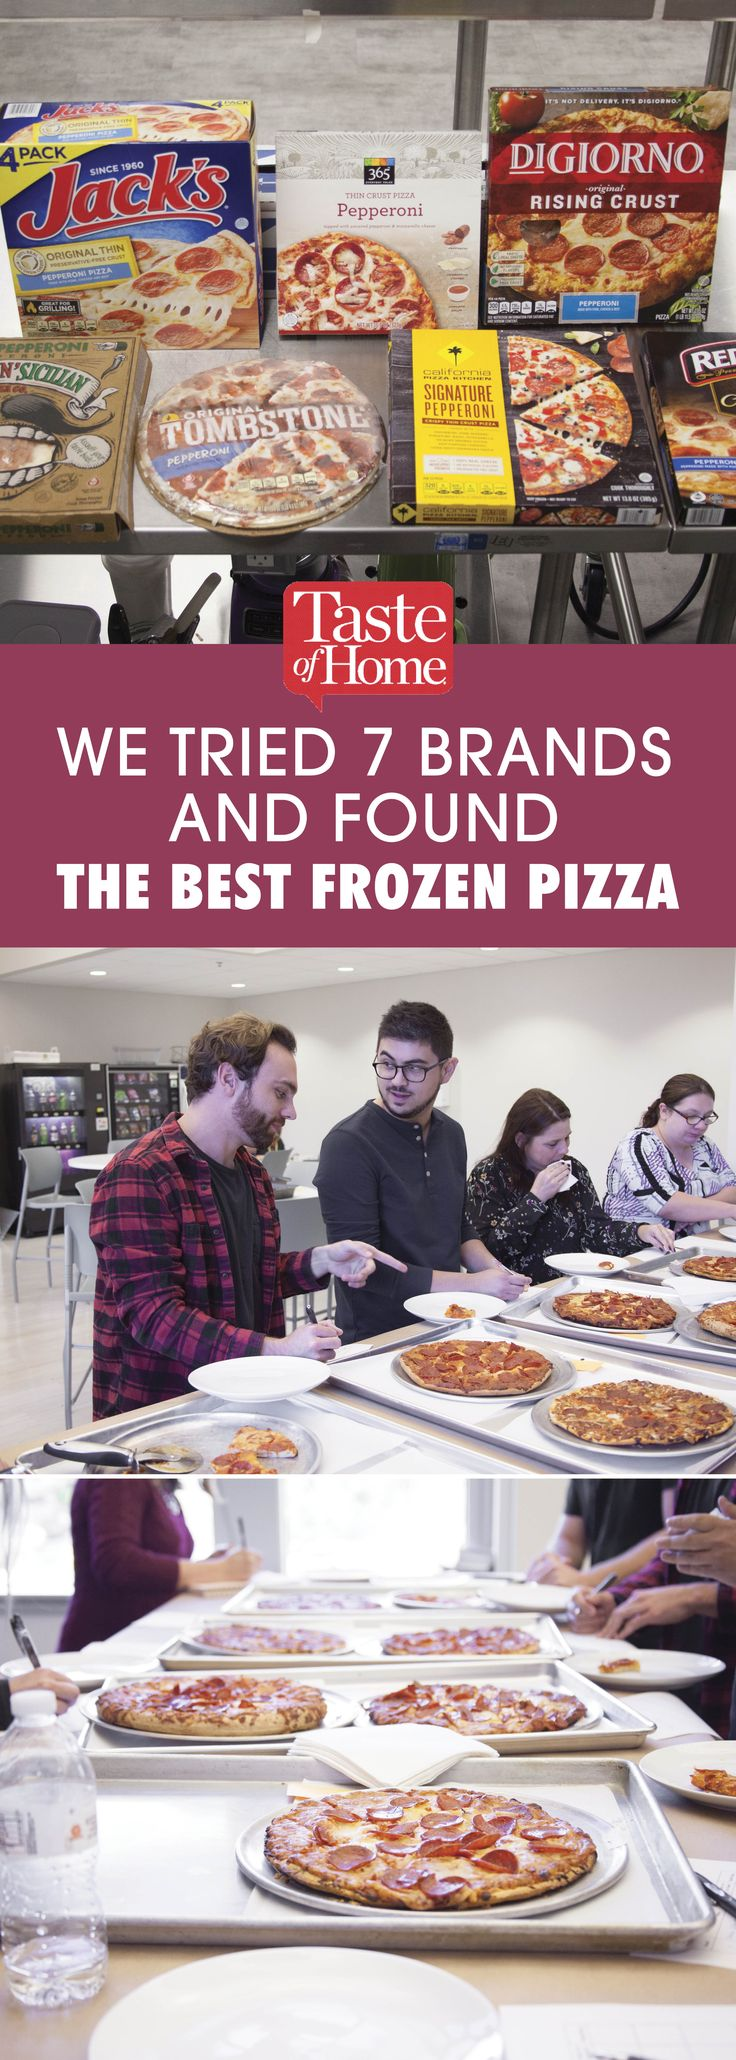 We Tried 7 Brands and Found the Best Frozen Pizza